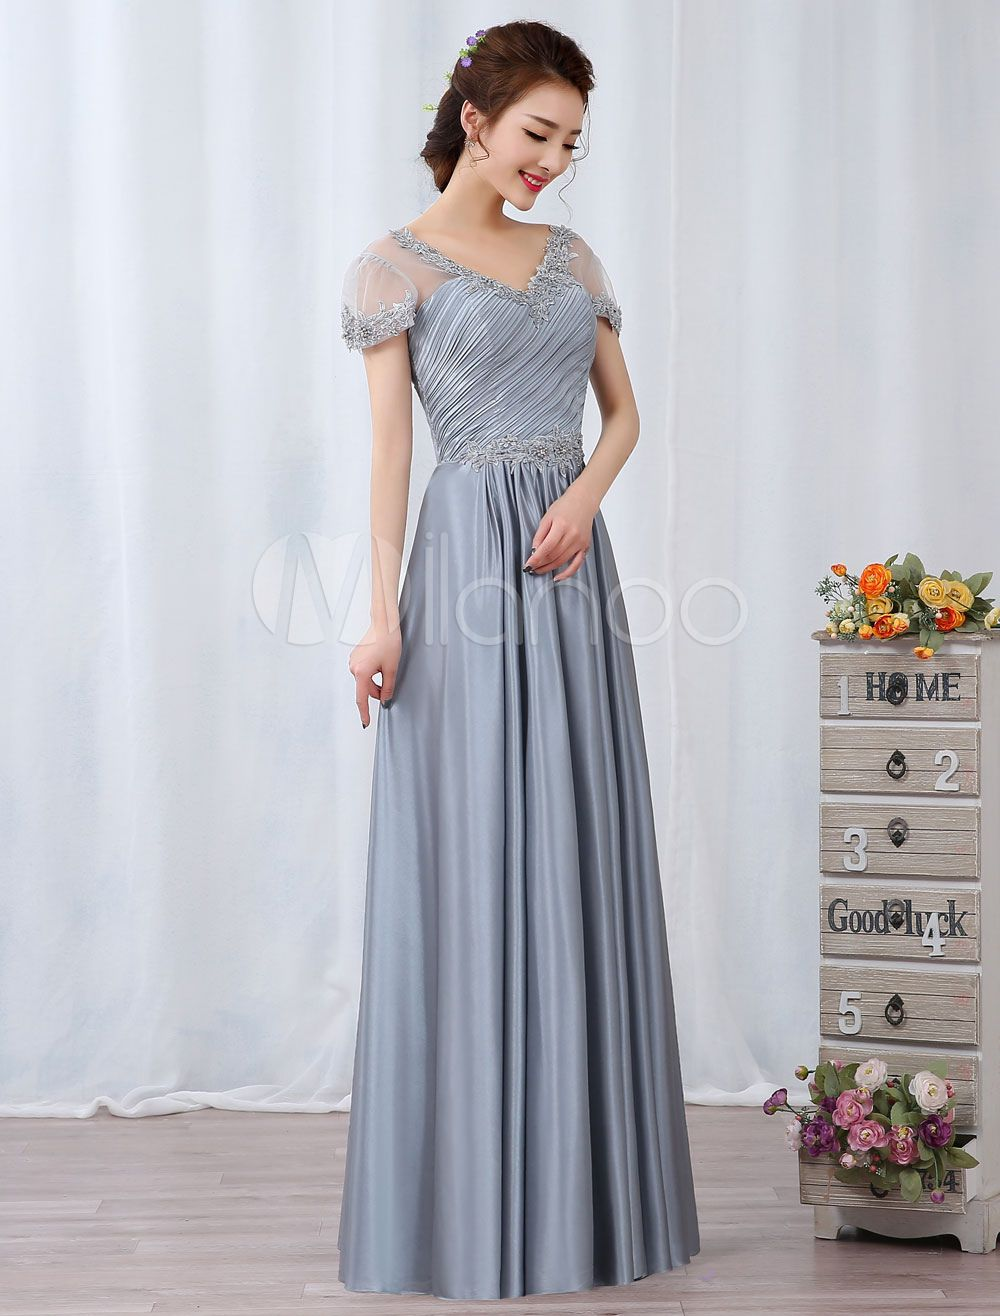 Long wedding guest dresses  Silver Evening Dresses Maxi Lace Applique Beaded Short Sleeve